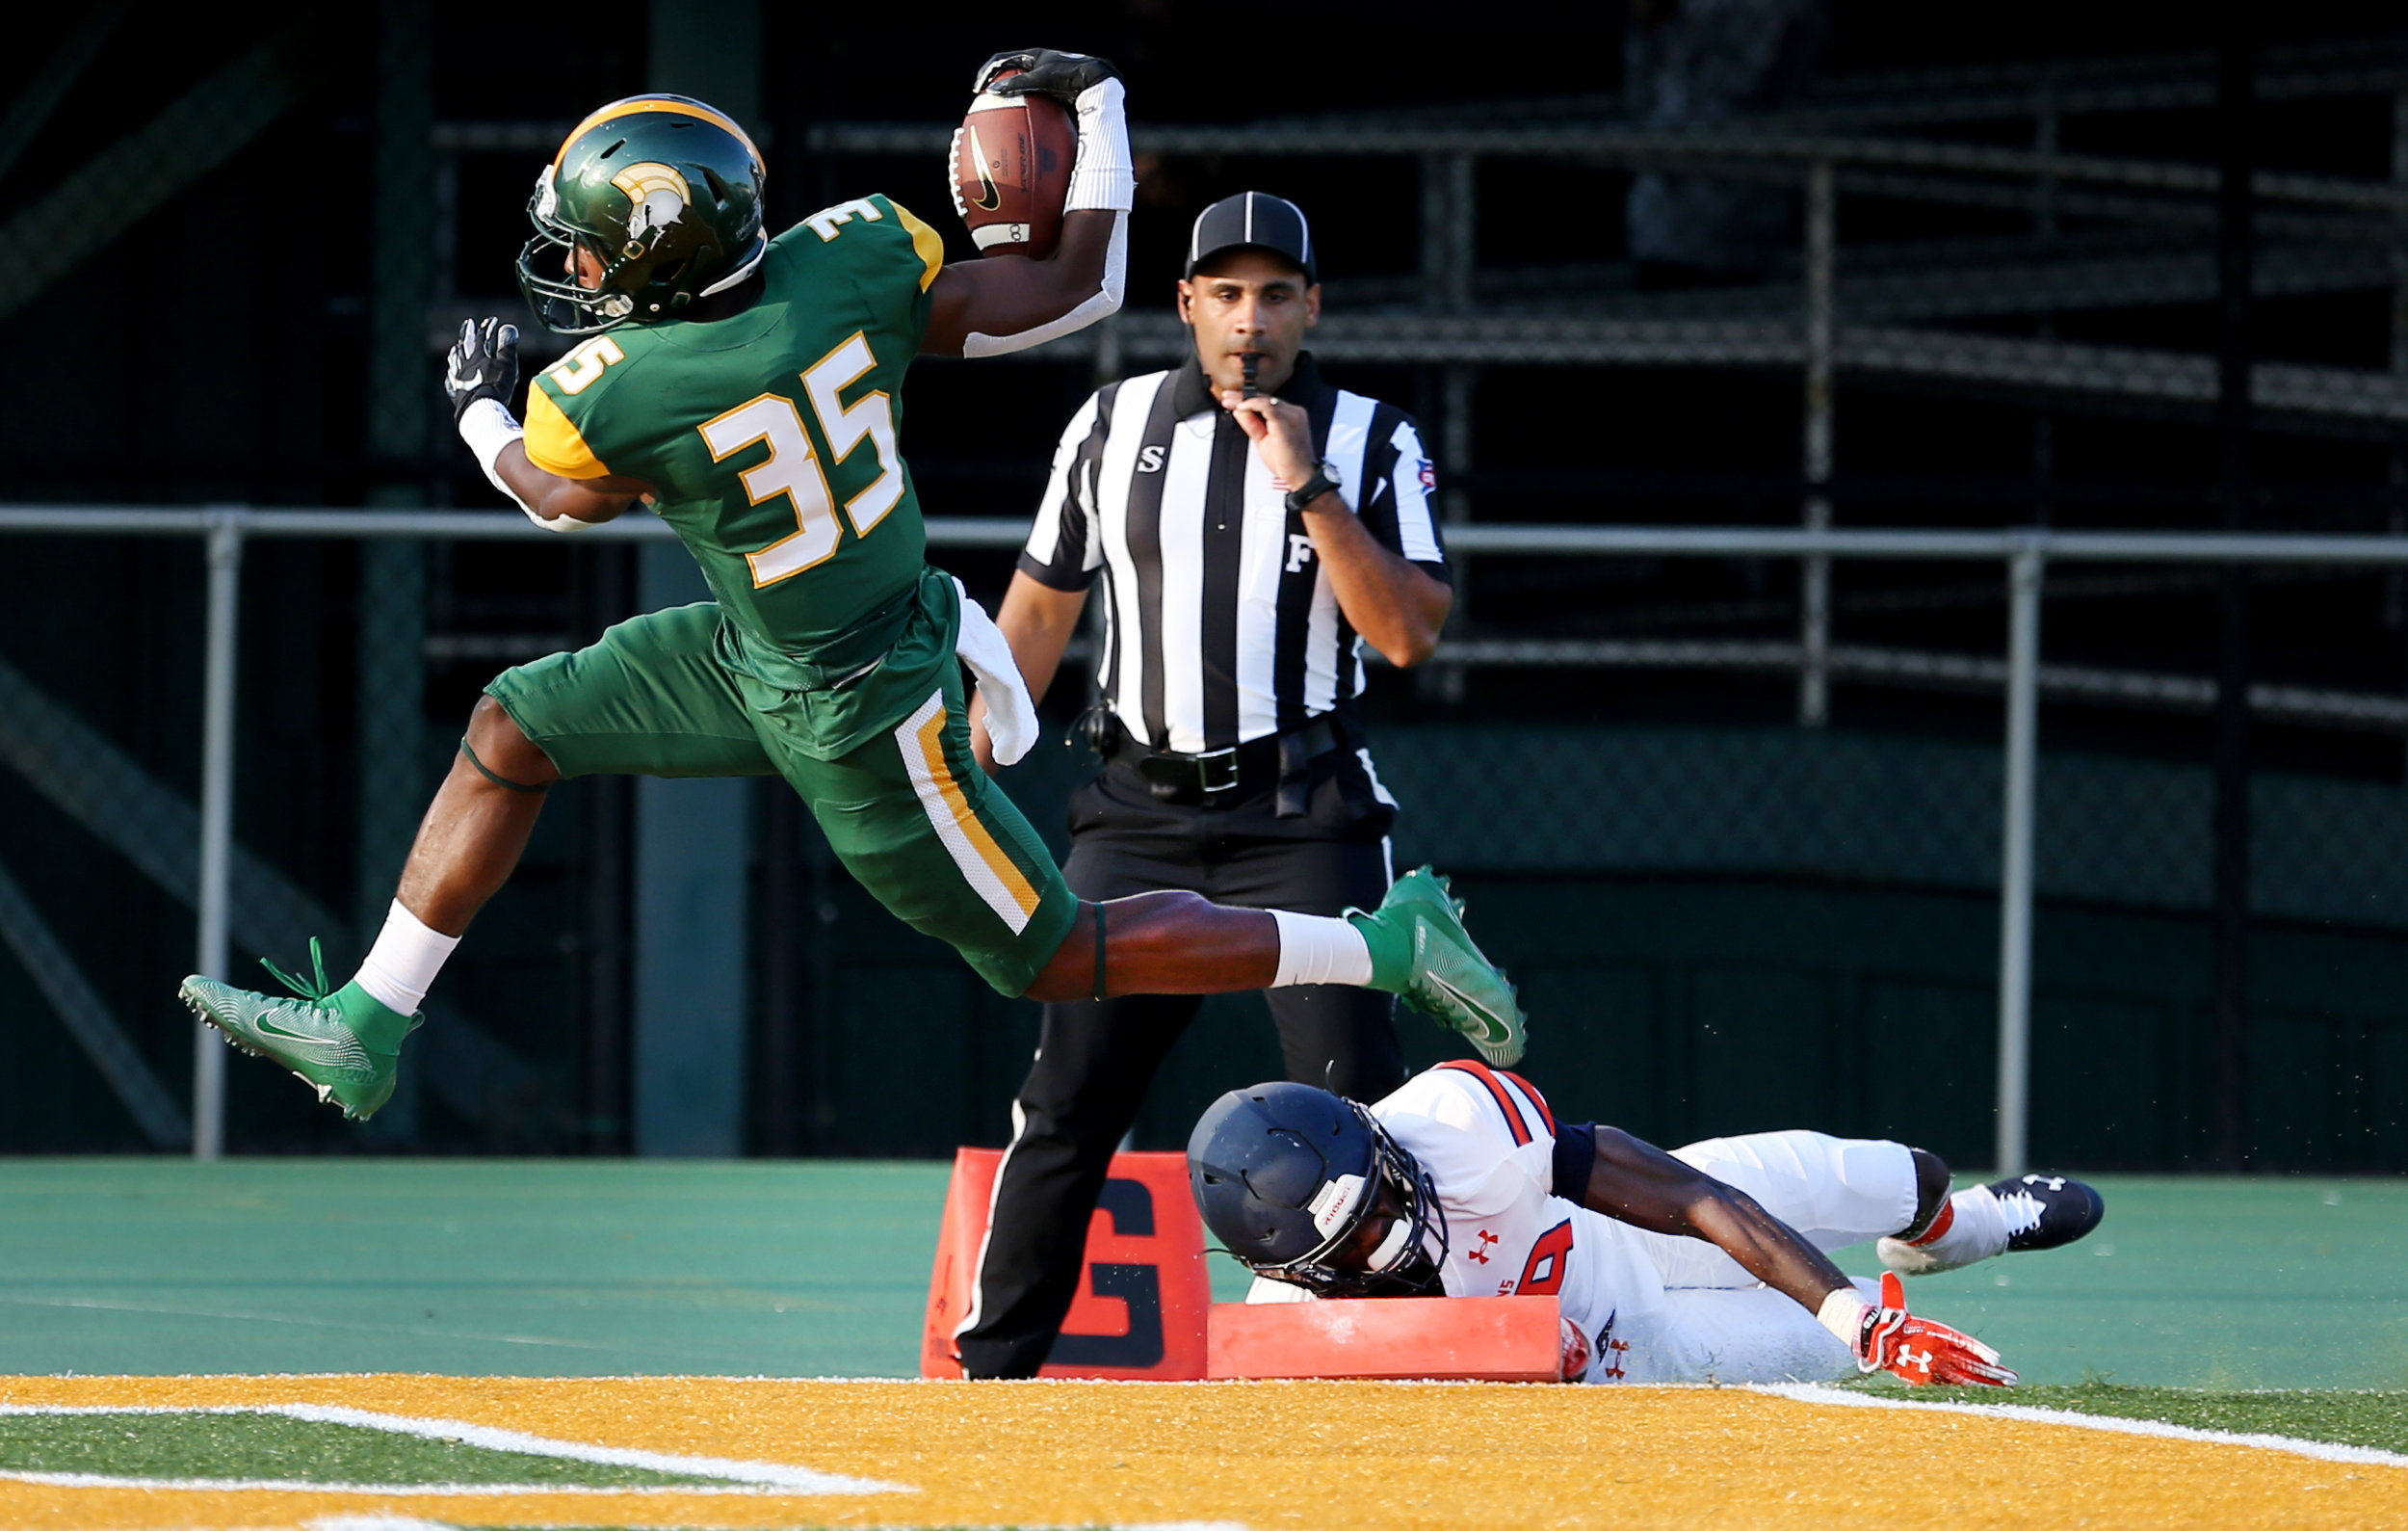 Norfolk State's Kevin Johnson scores on his first collegiate carry for 33 yards against Virginia State, Saturday, September 7, 2019 at Dick Price Stadium in Norfolk.